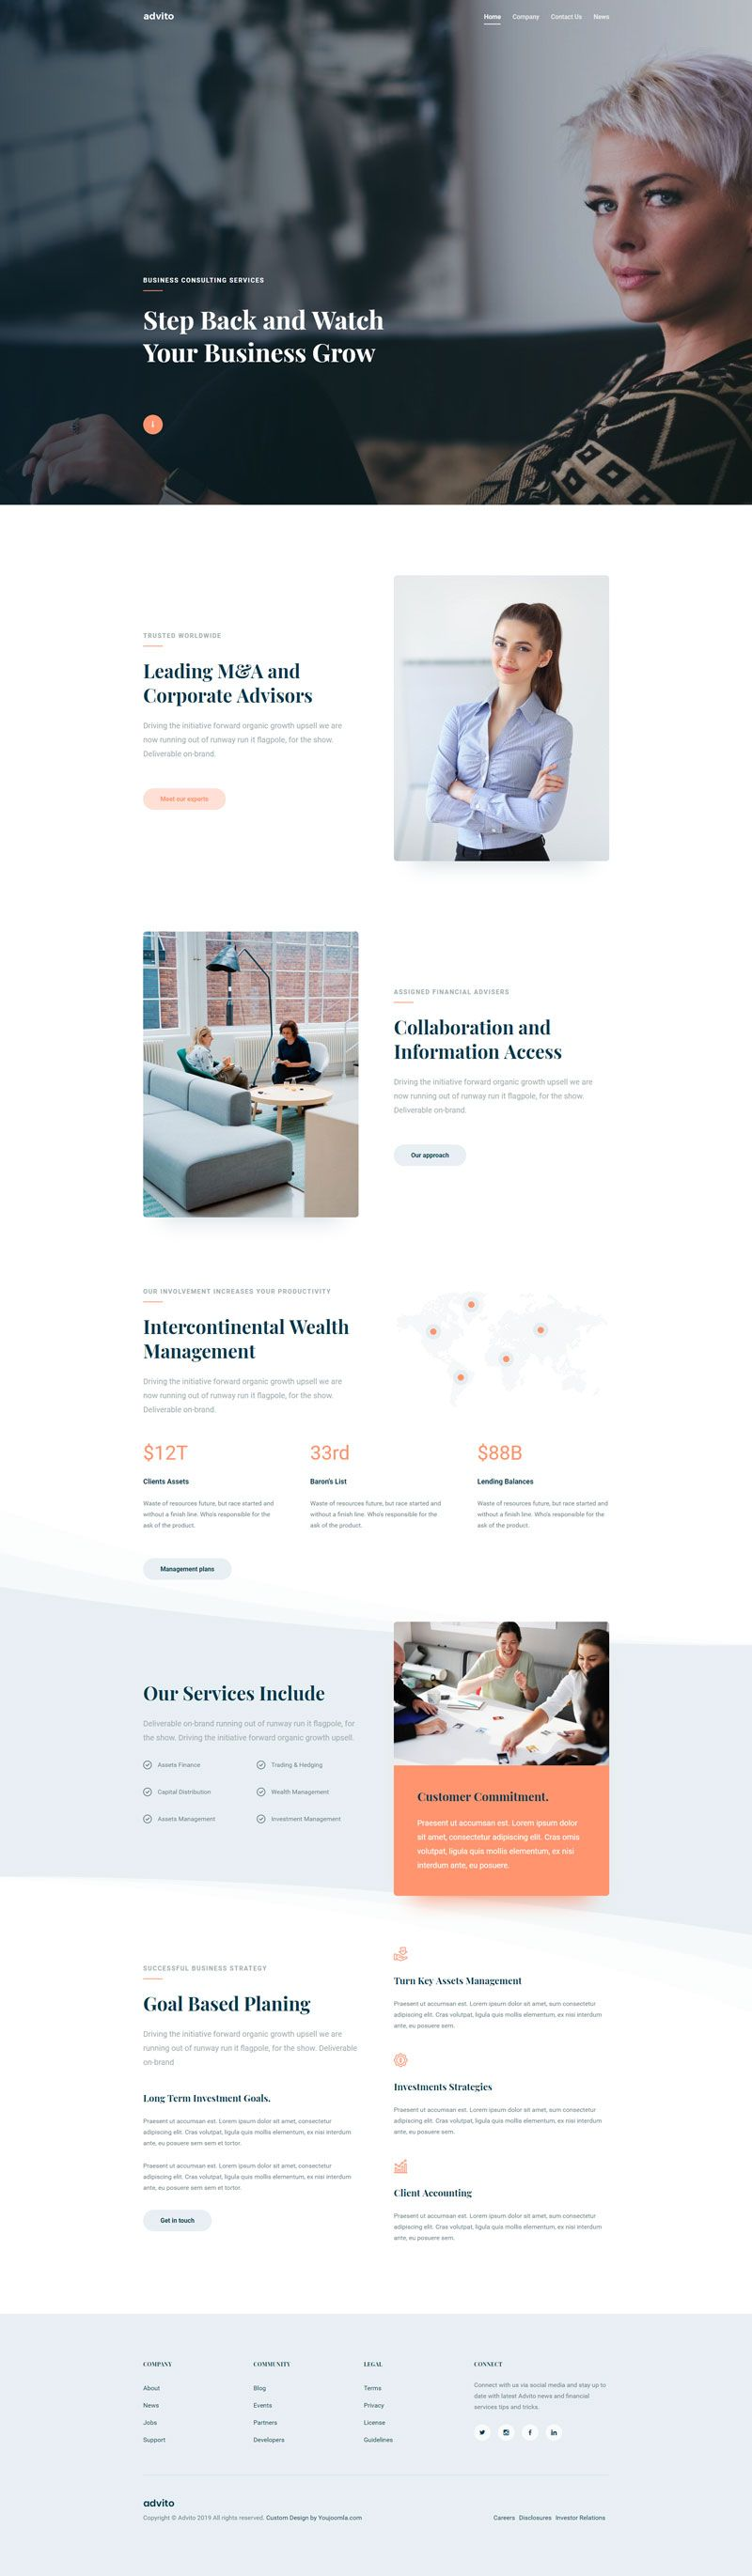 Advito - Corporate Business Joomla! Template